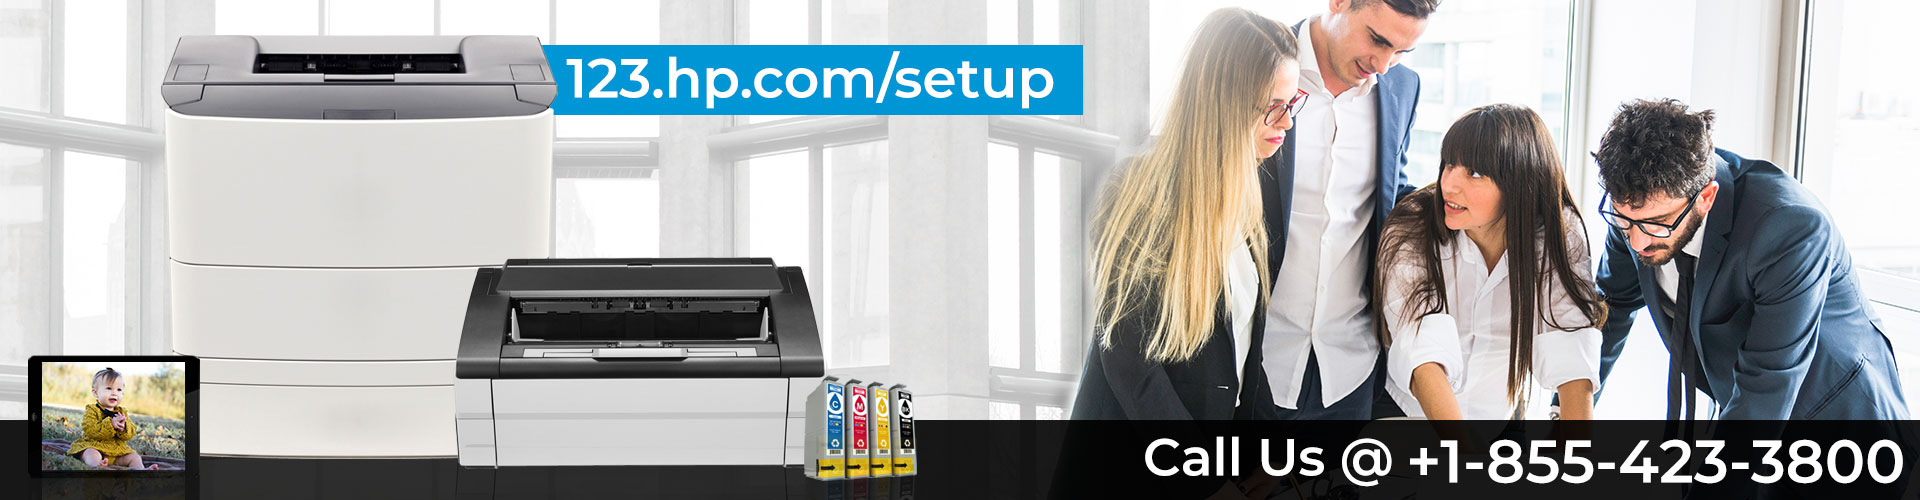 How to setup HP Printer with 123 hp com setup | HP Printer Setup and Driver Download